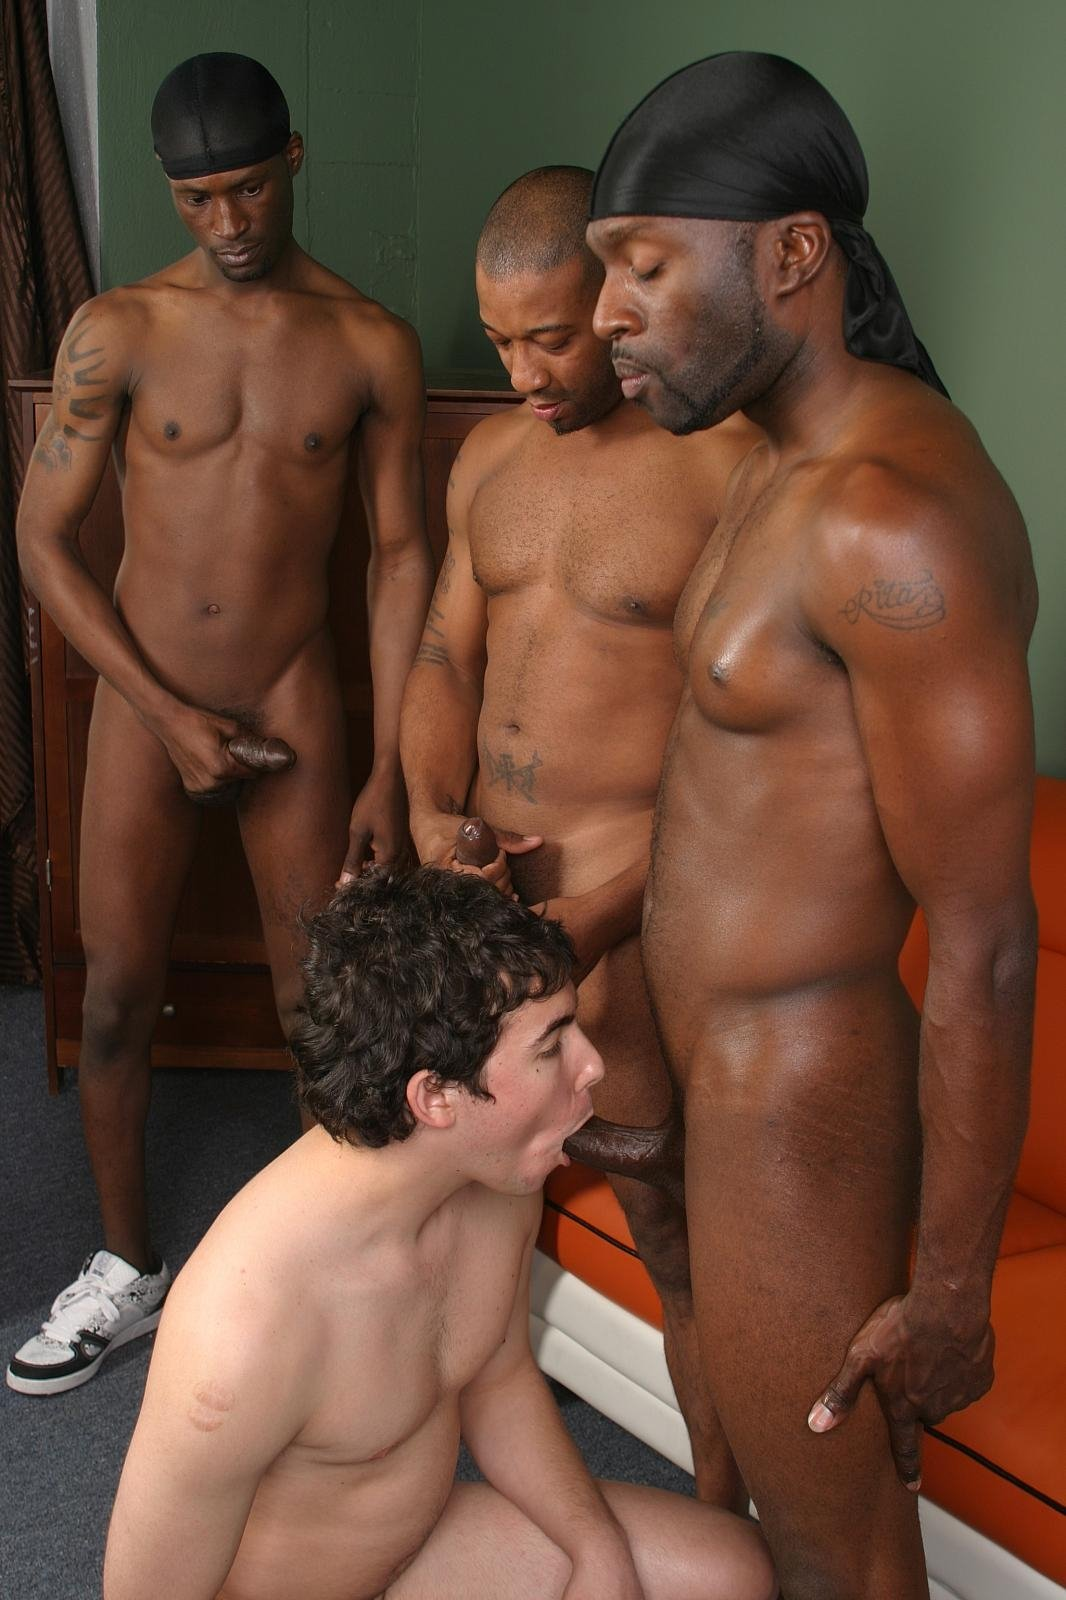 Black boys only. i'll be happy to watch